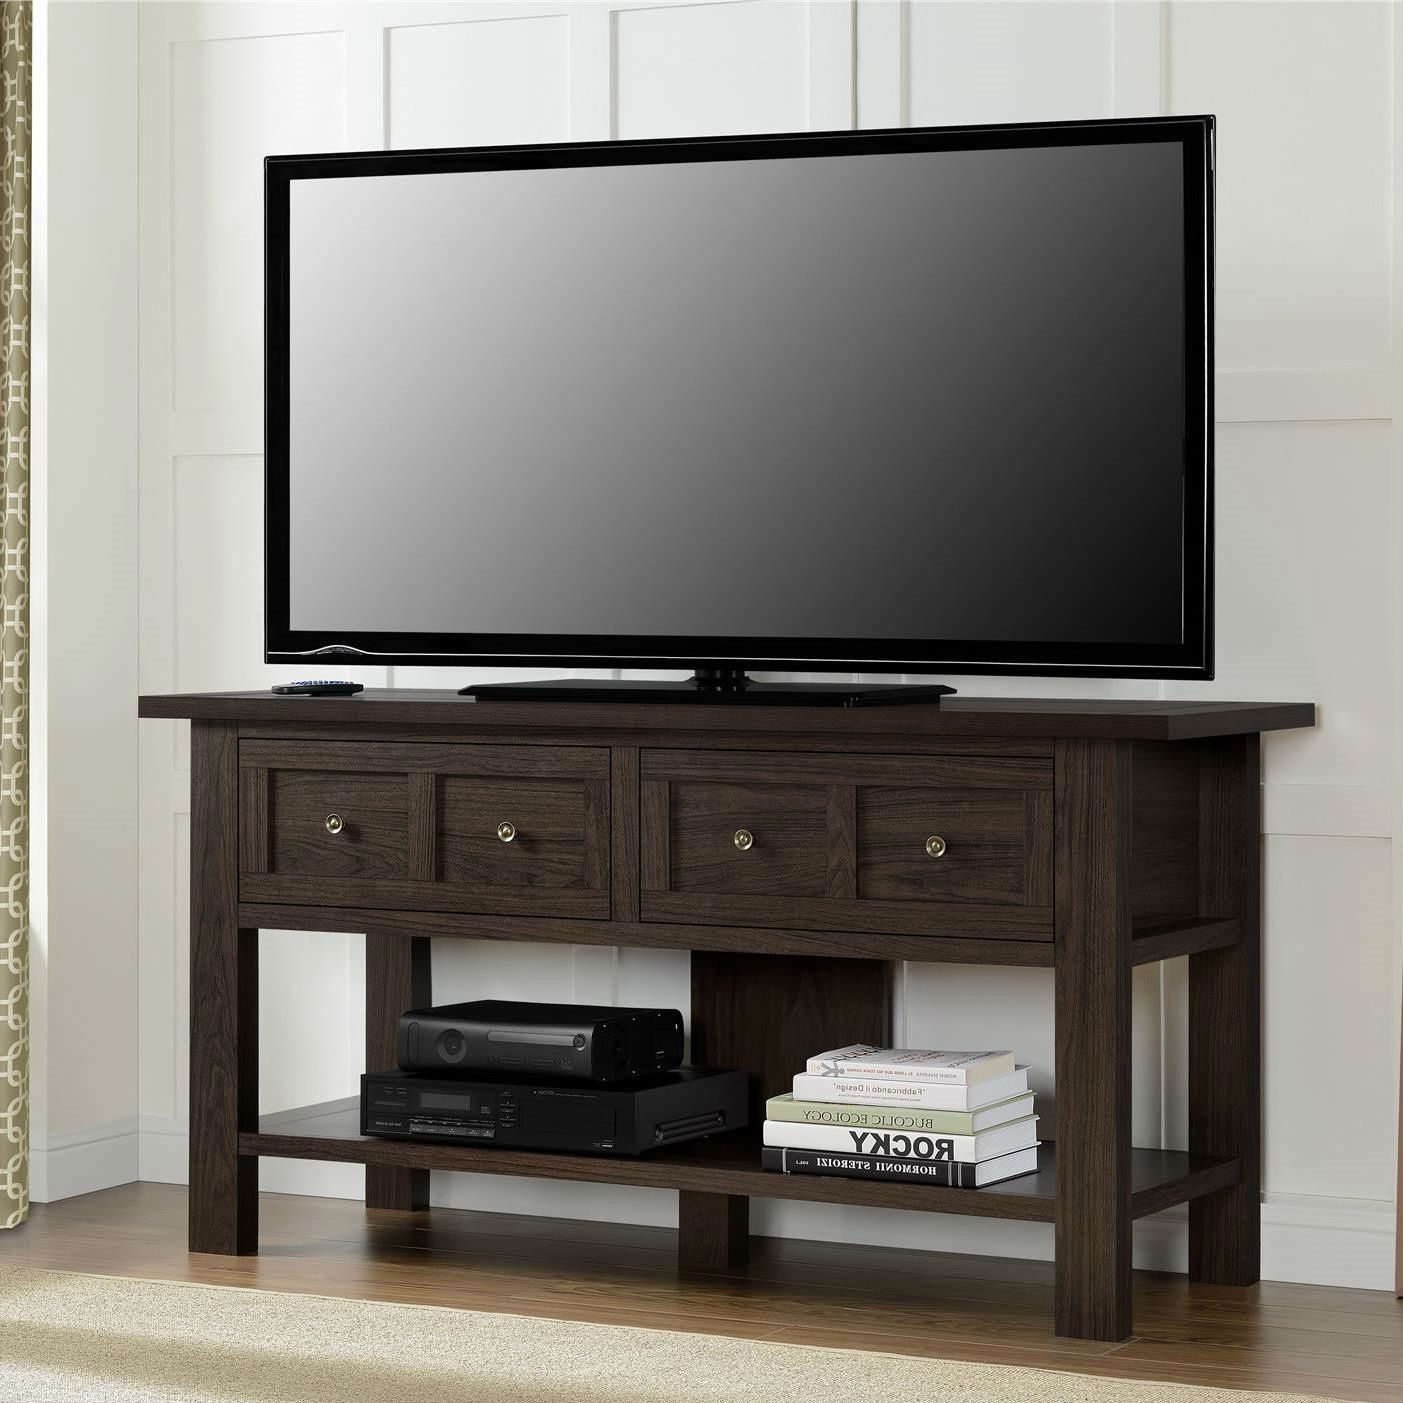 Merveilleux Classic 55 Inch TV Stand Versatile Accent Console Table With 2 Storage  Drawers